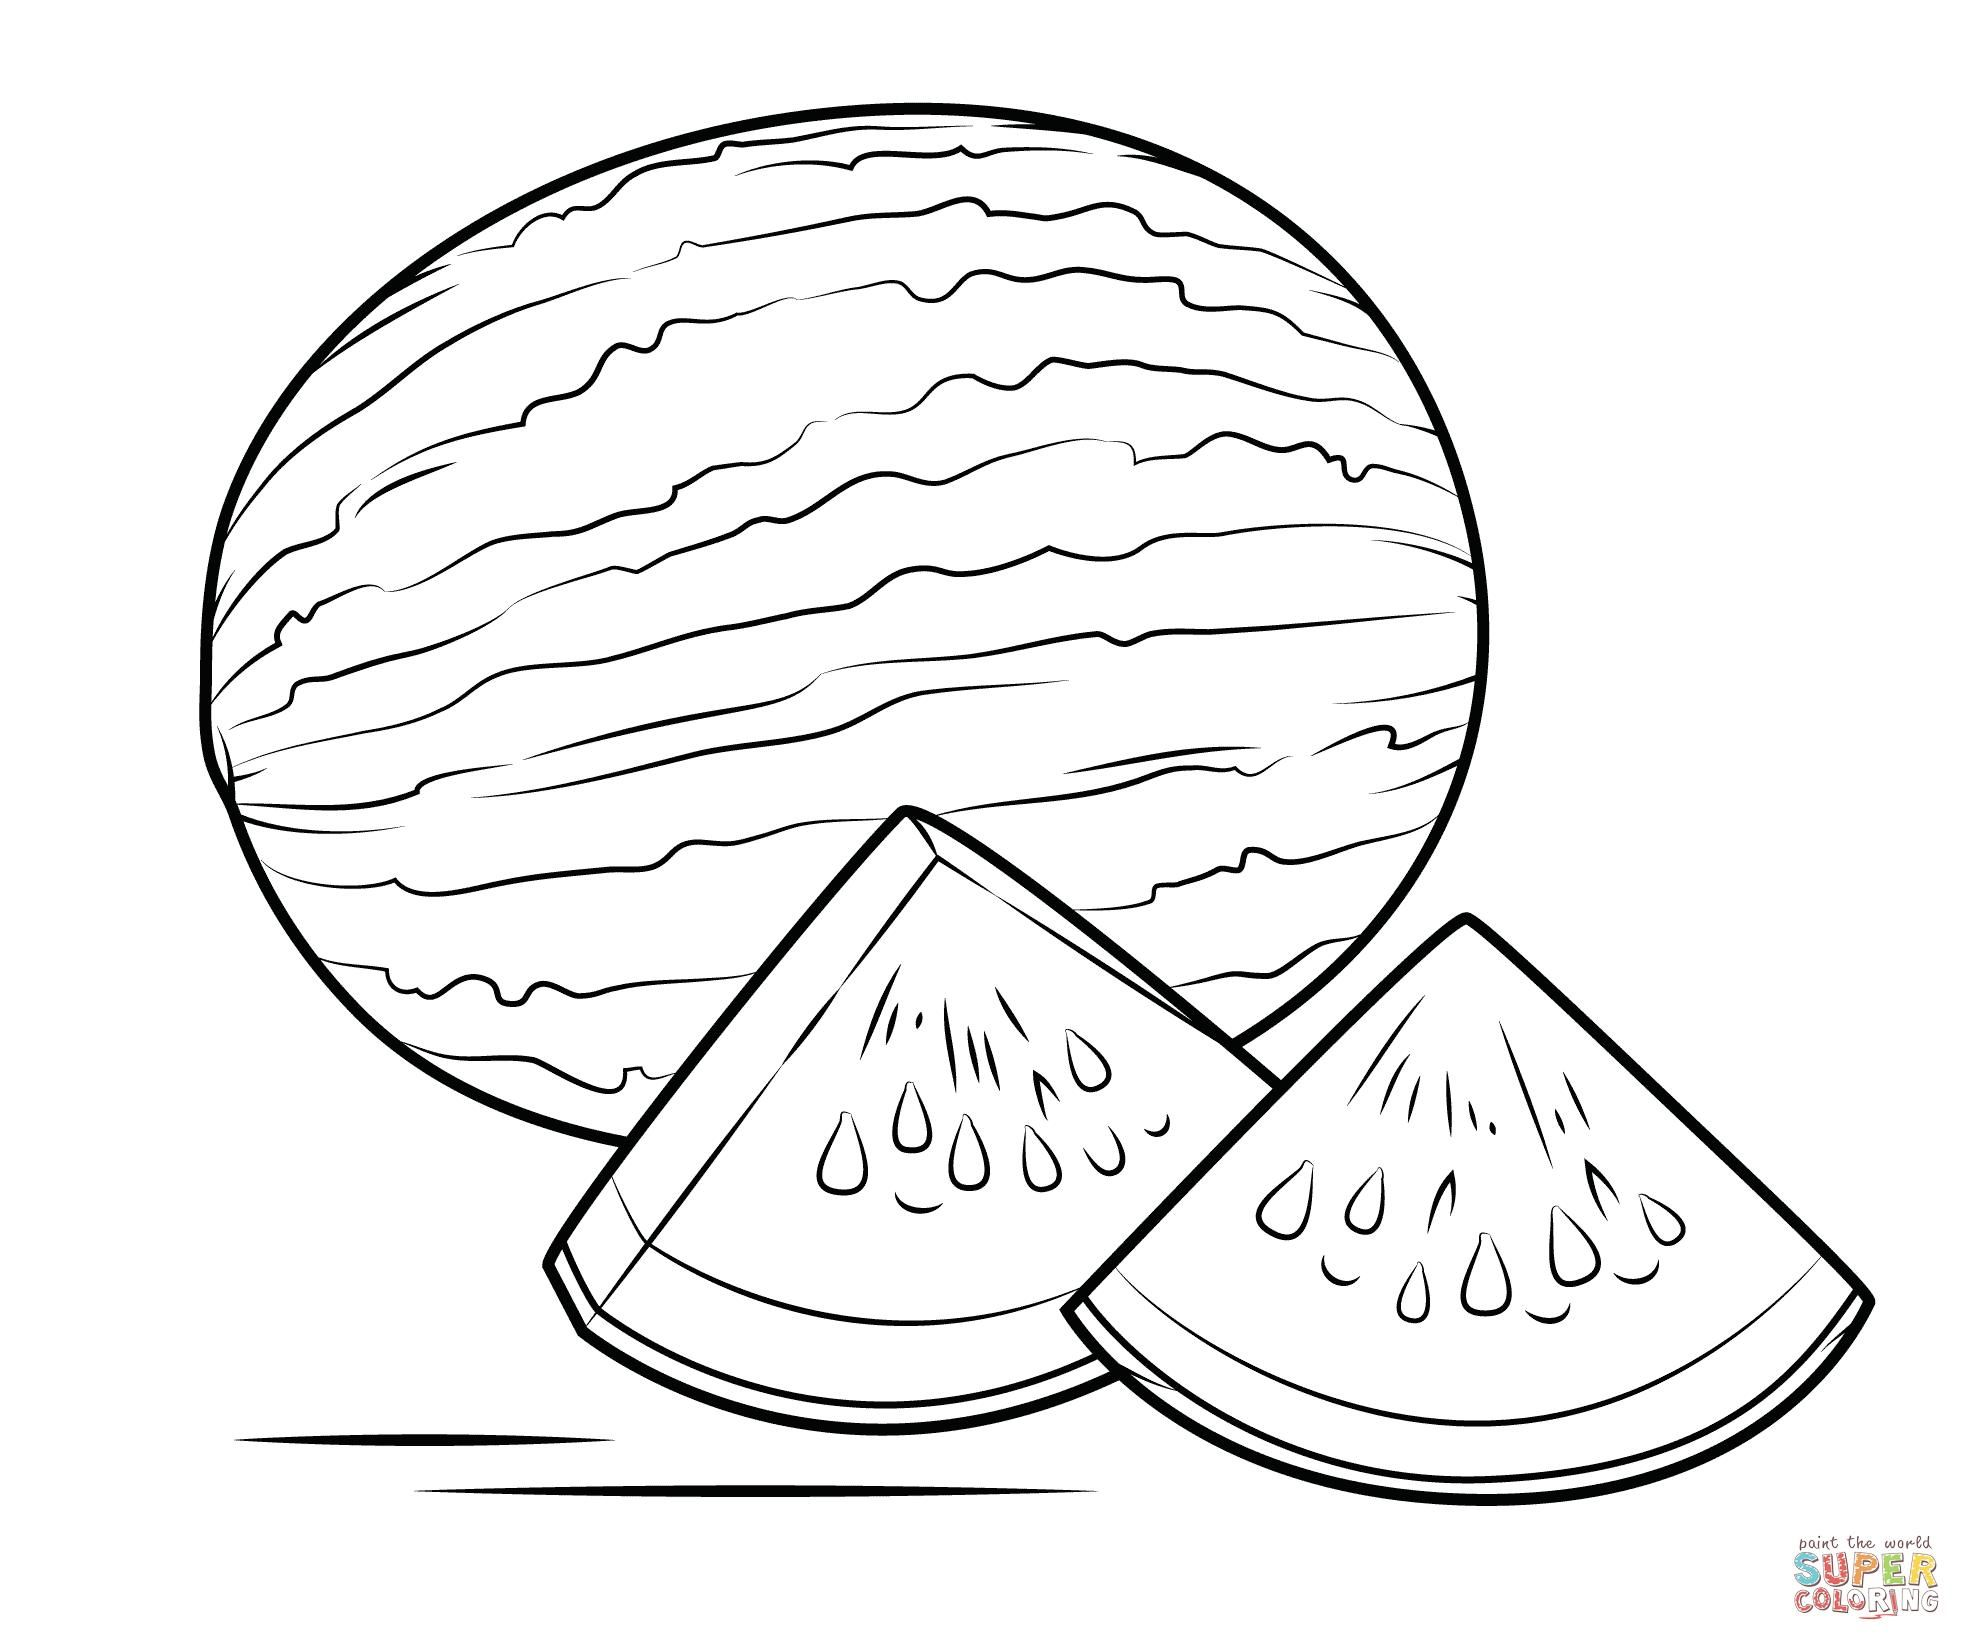 10 Coloring Page Watermelon Coloring Pages Printable Coloring Coloring Books